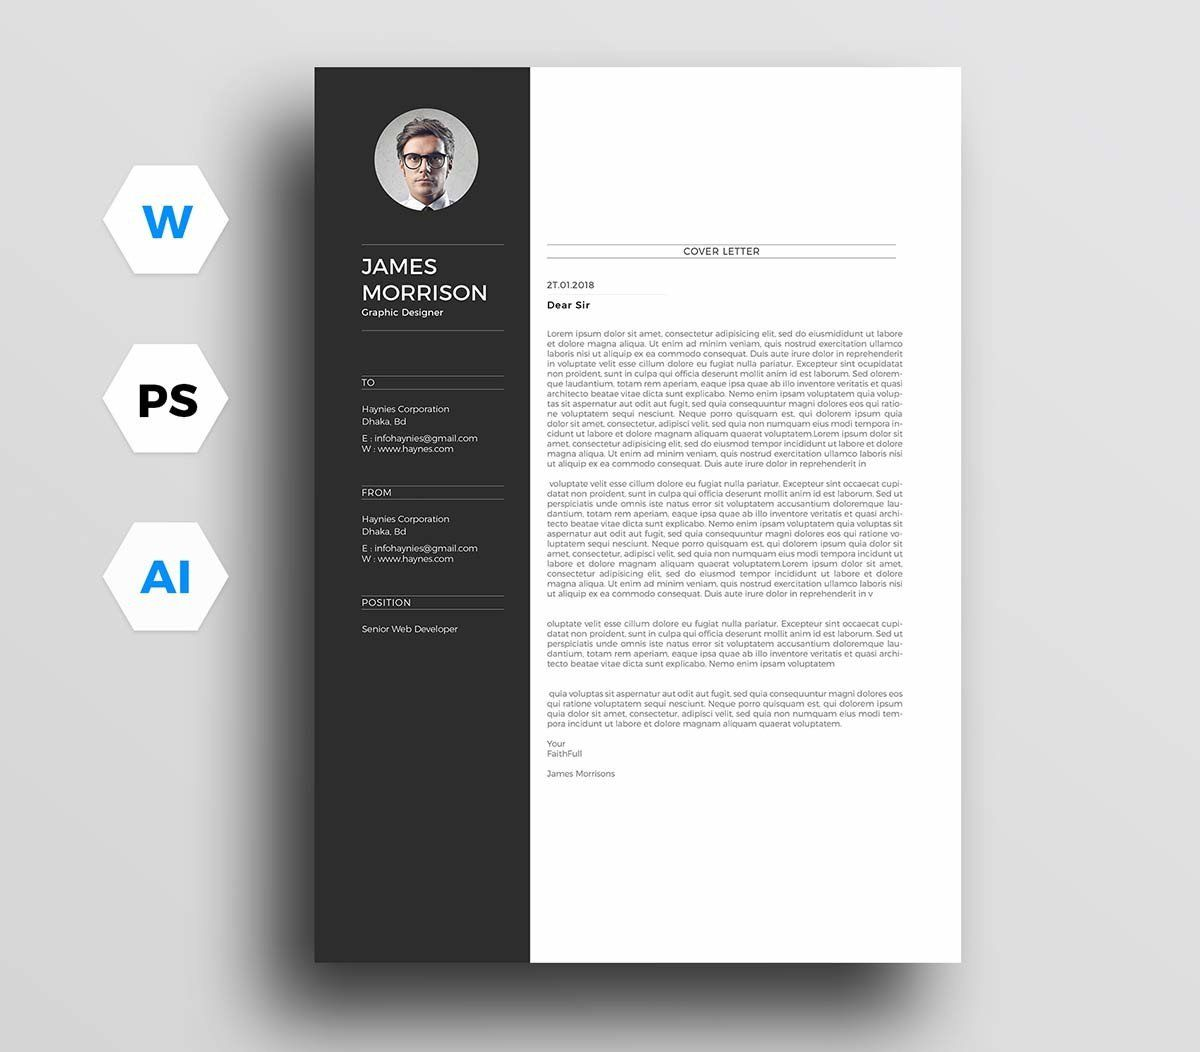 003 Beautiful Microsoft Cover Letter Template 2020 Photo Full